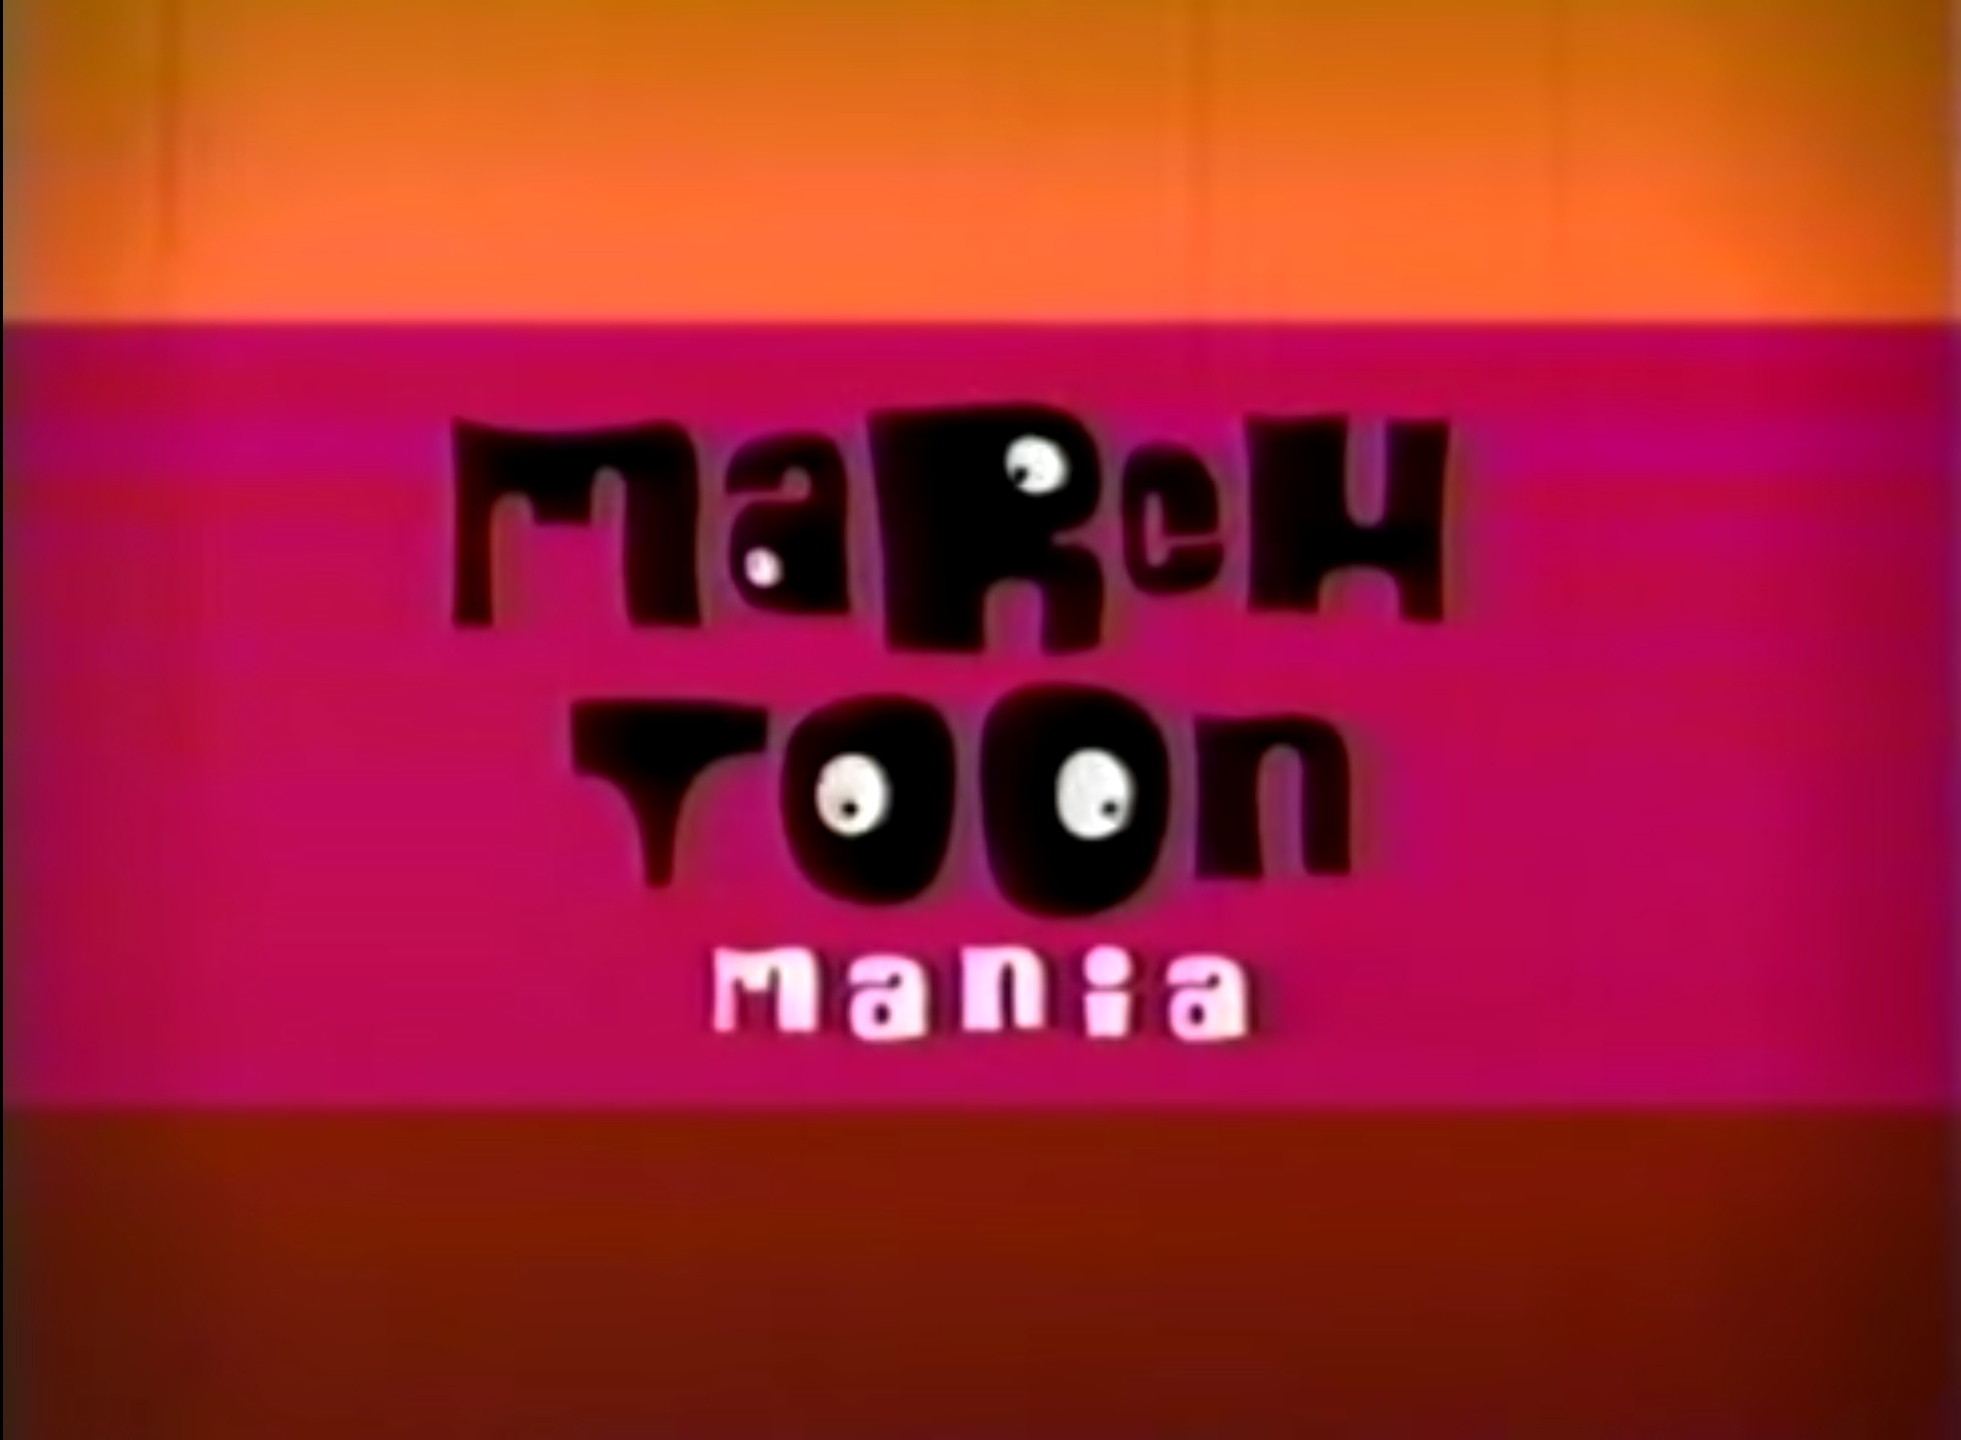 March Toon Mania